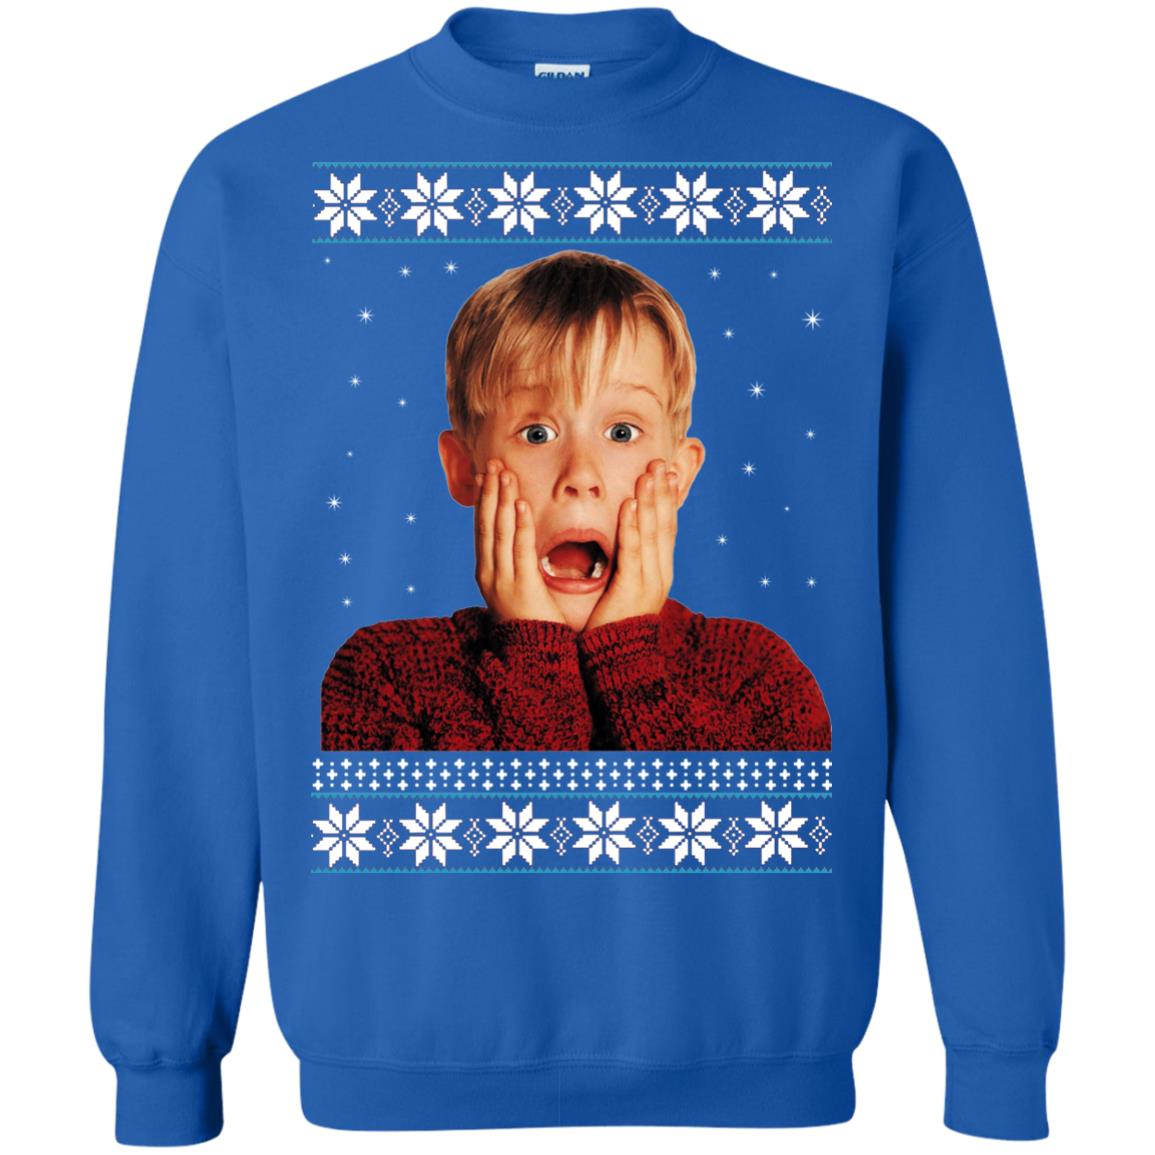 image 6280 - Home Alone: Kevin McCallister Sweatshirt, Hoodie, Long Sleeve